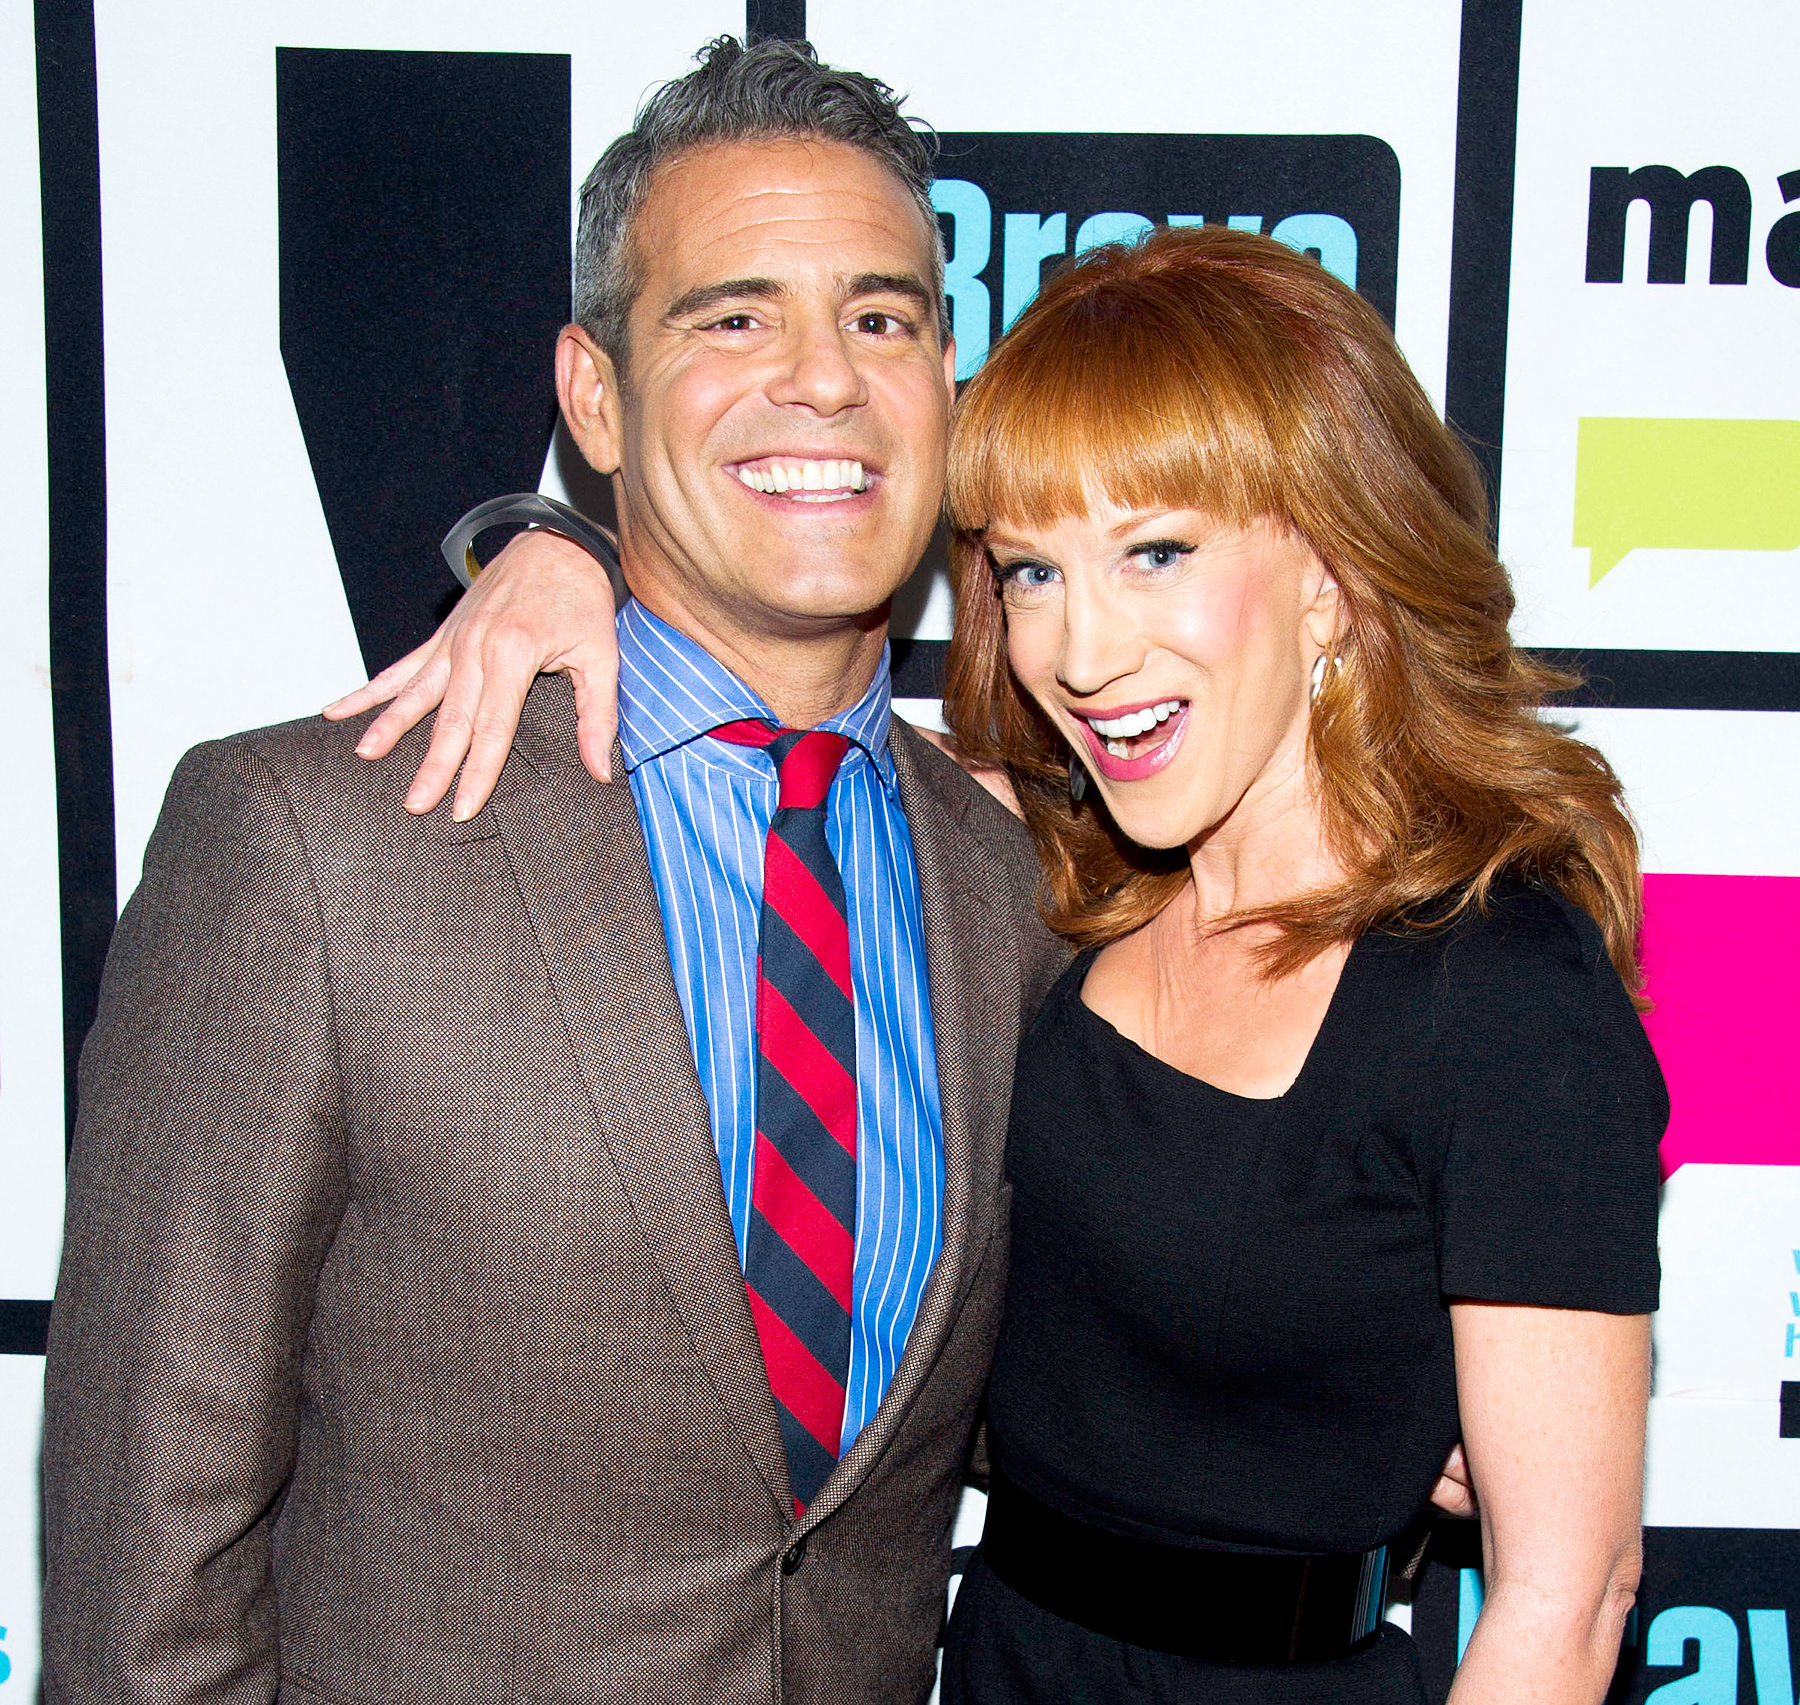 Kathy Griffin Slams Andy Cohen and Harvey Levin